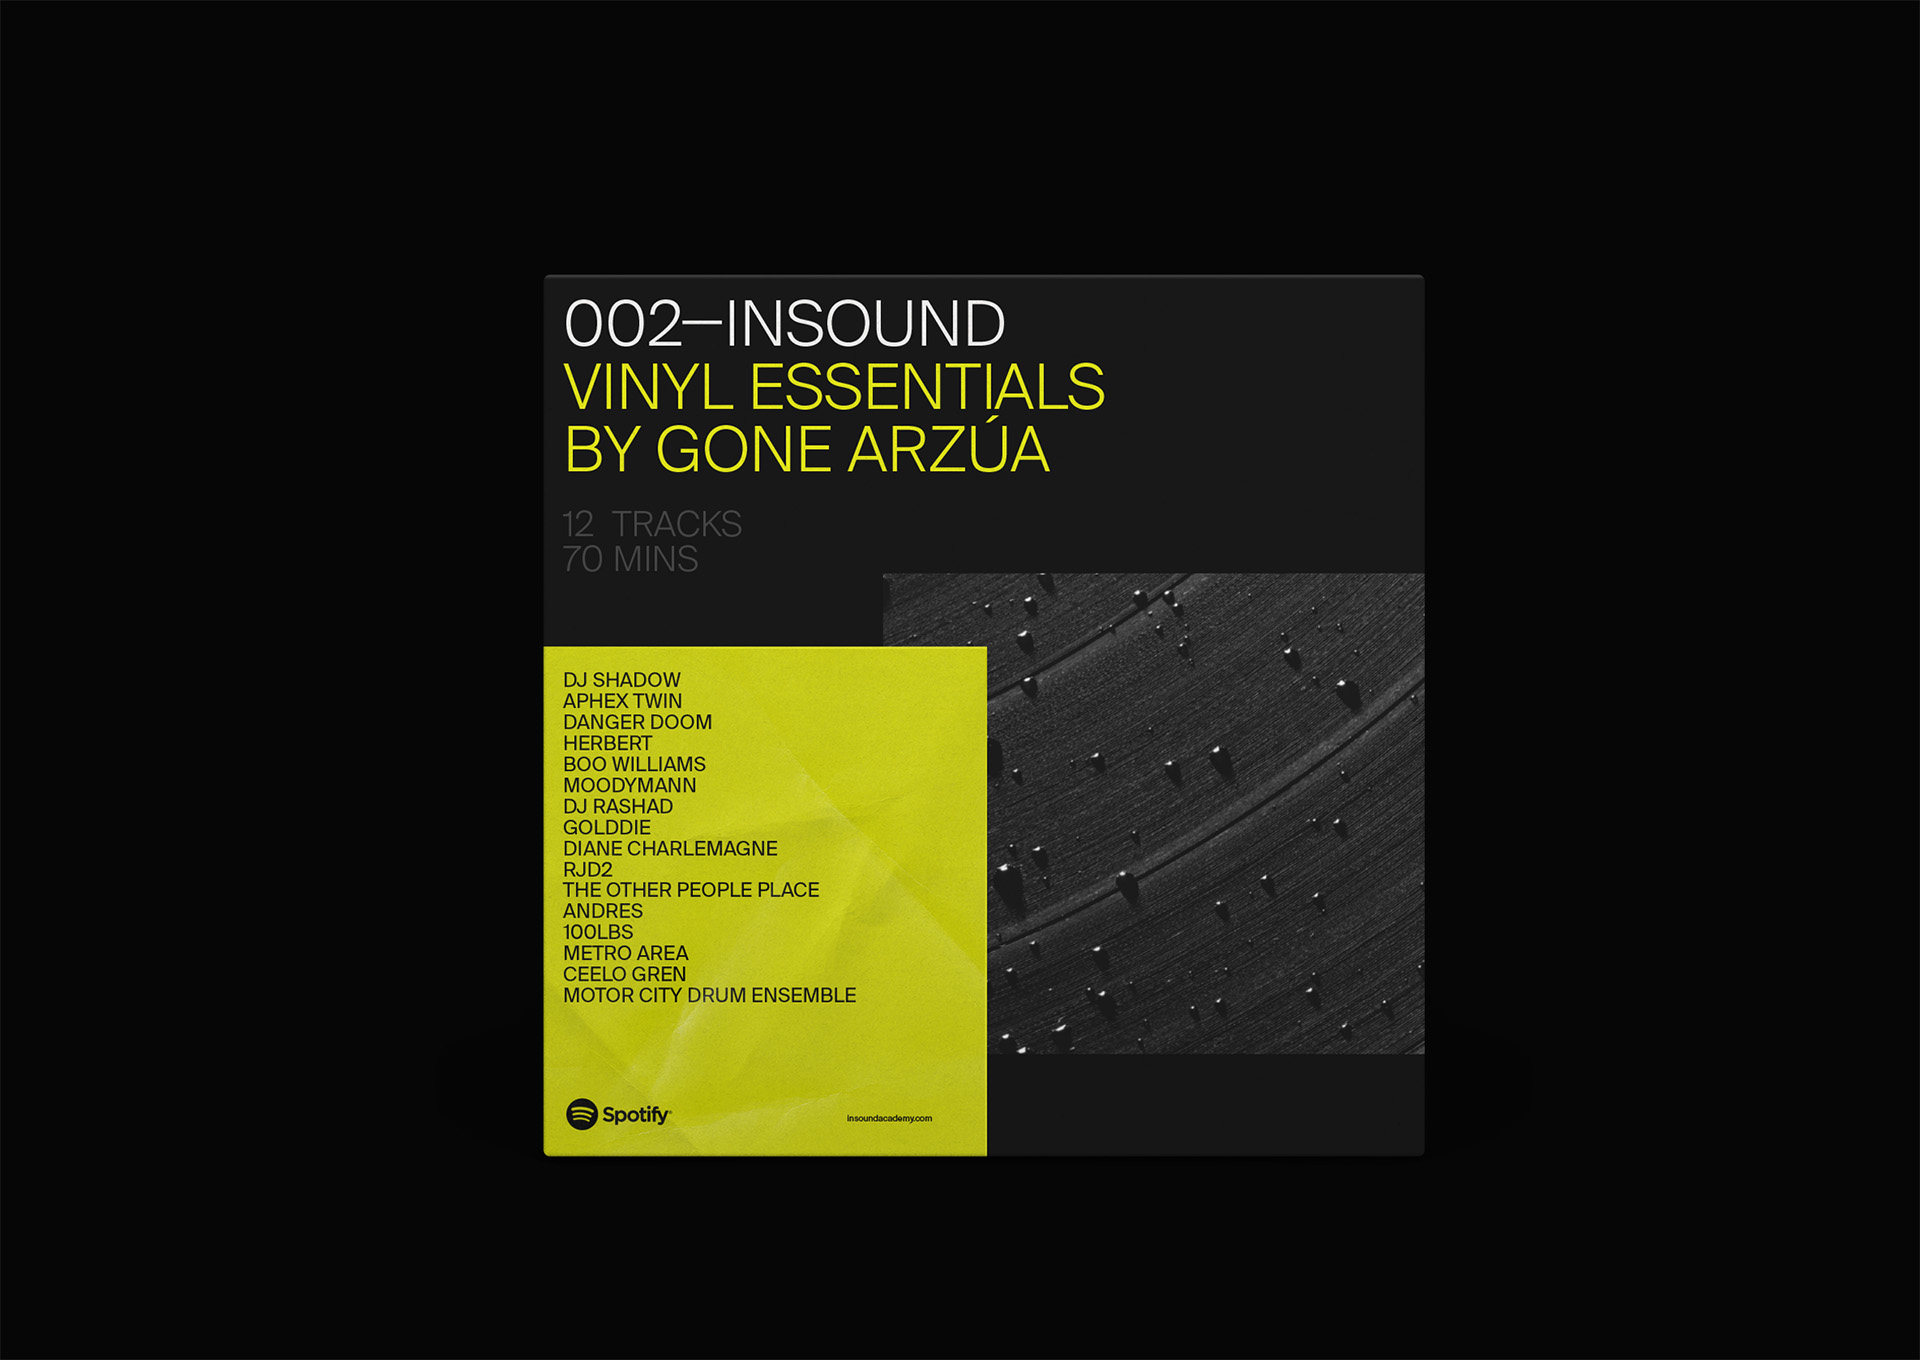 INSOUND - Spotify copy